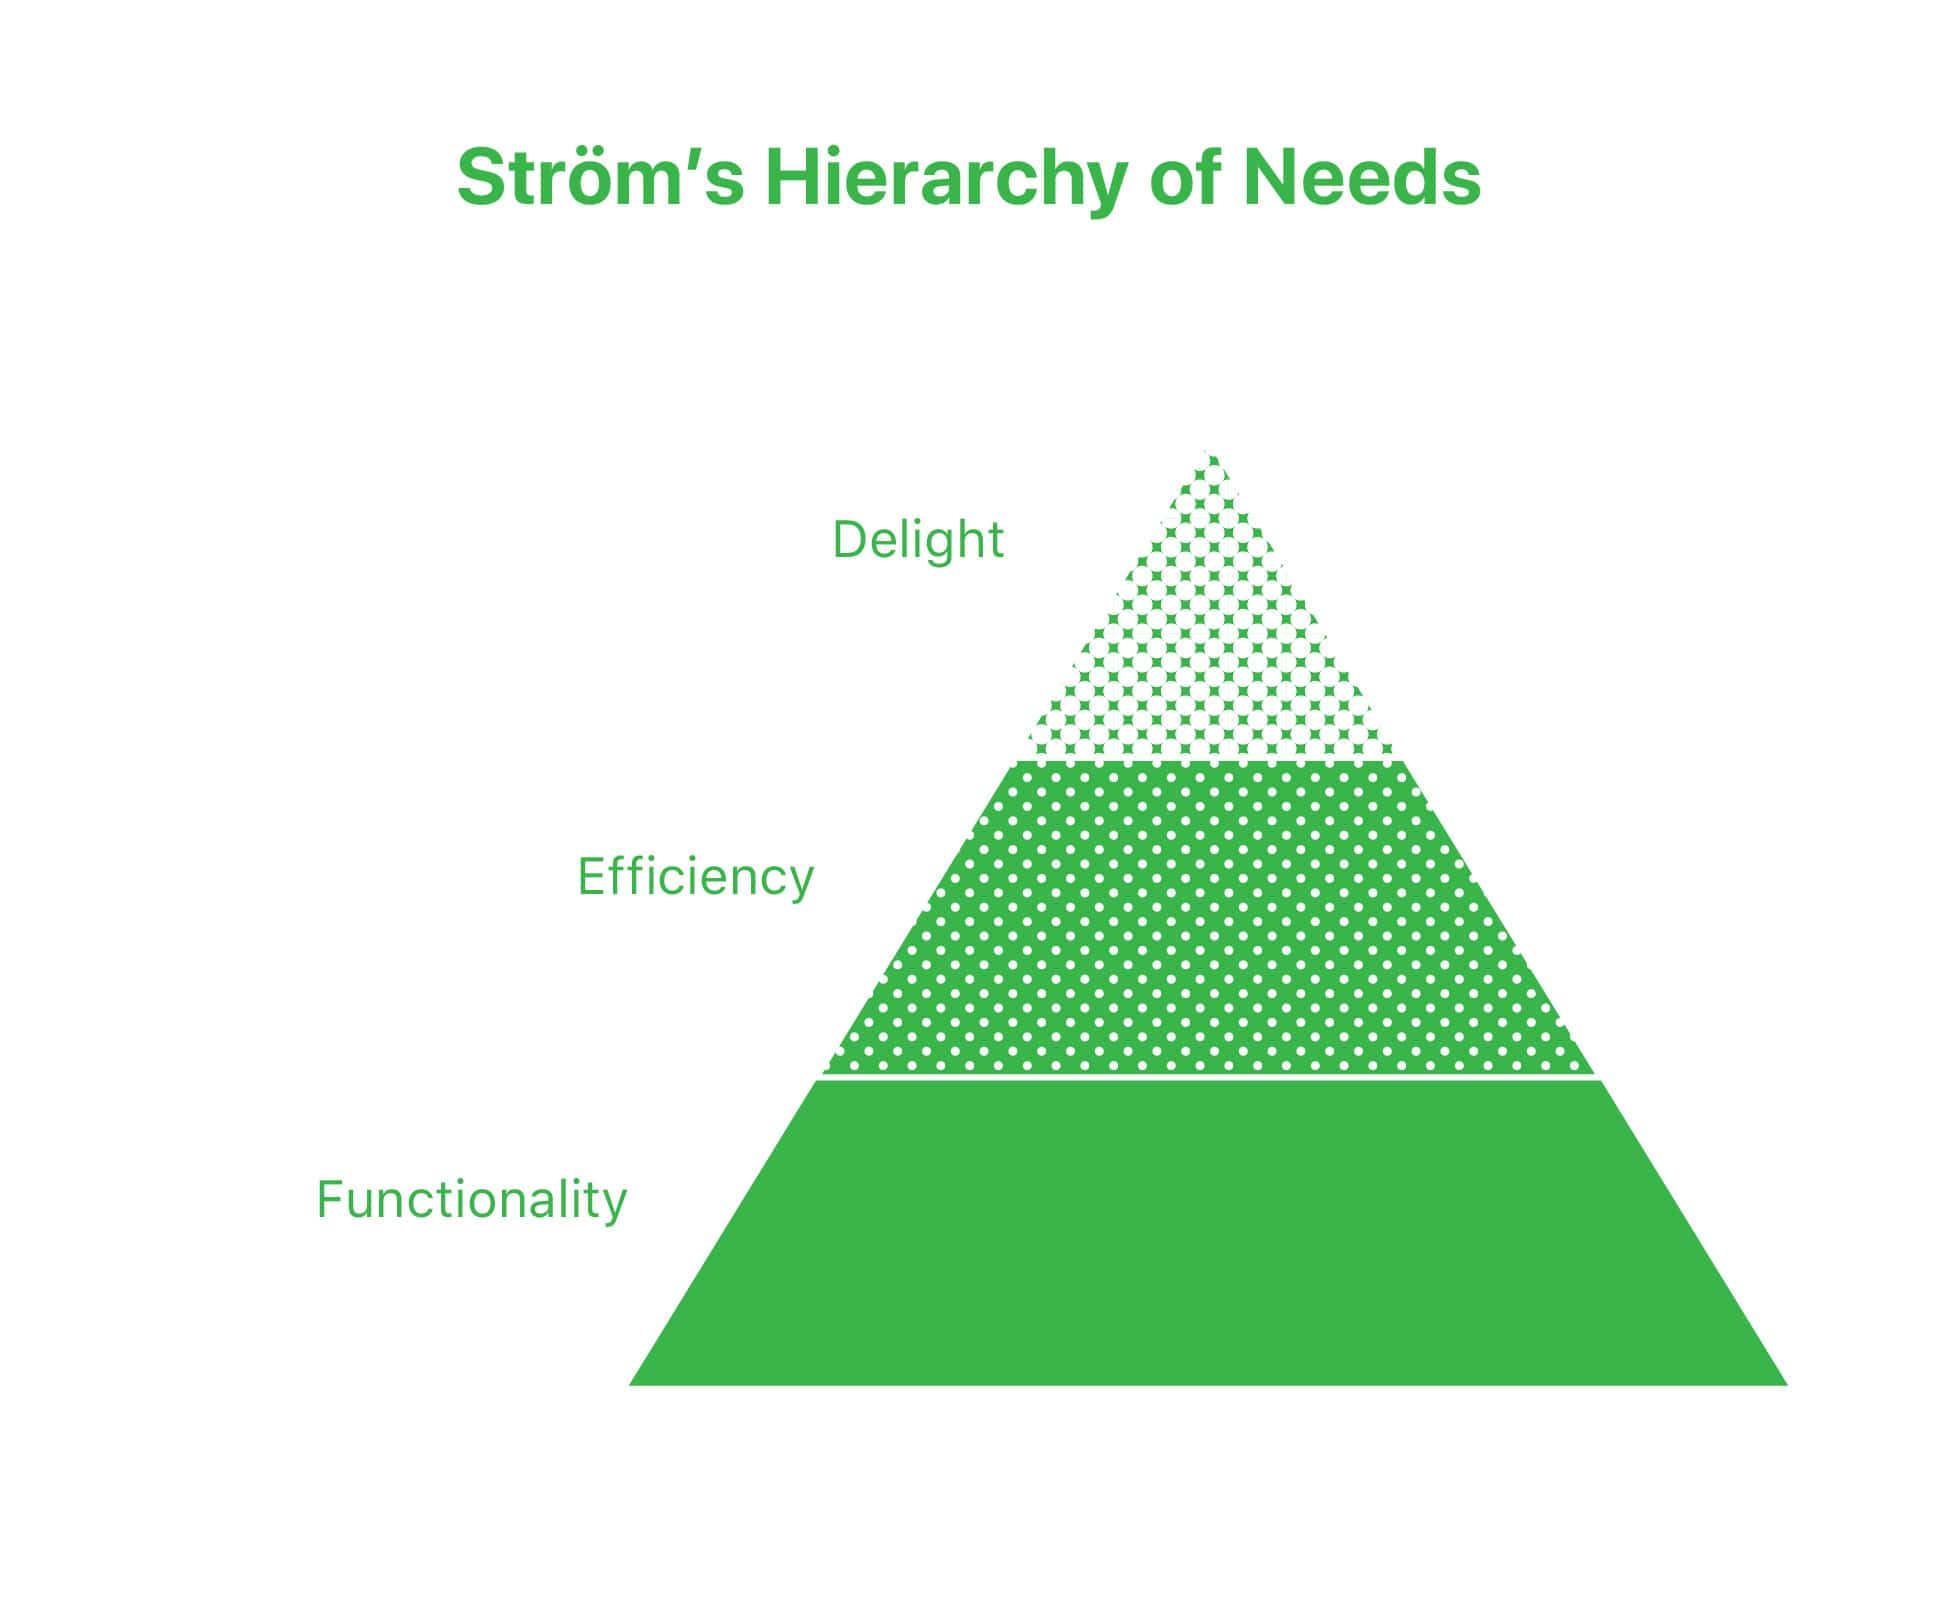 Ström's Hierarchy of Needs